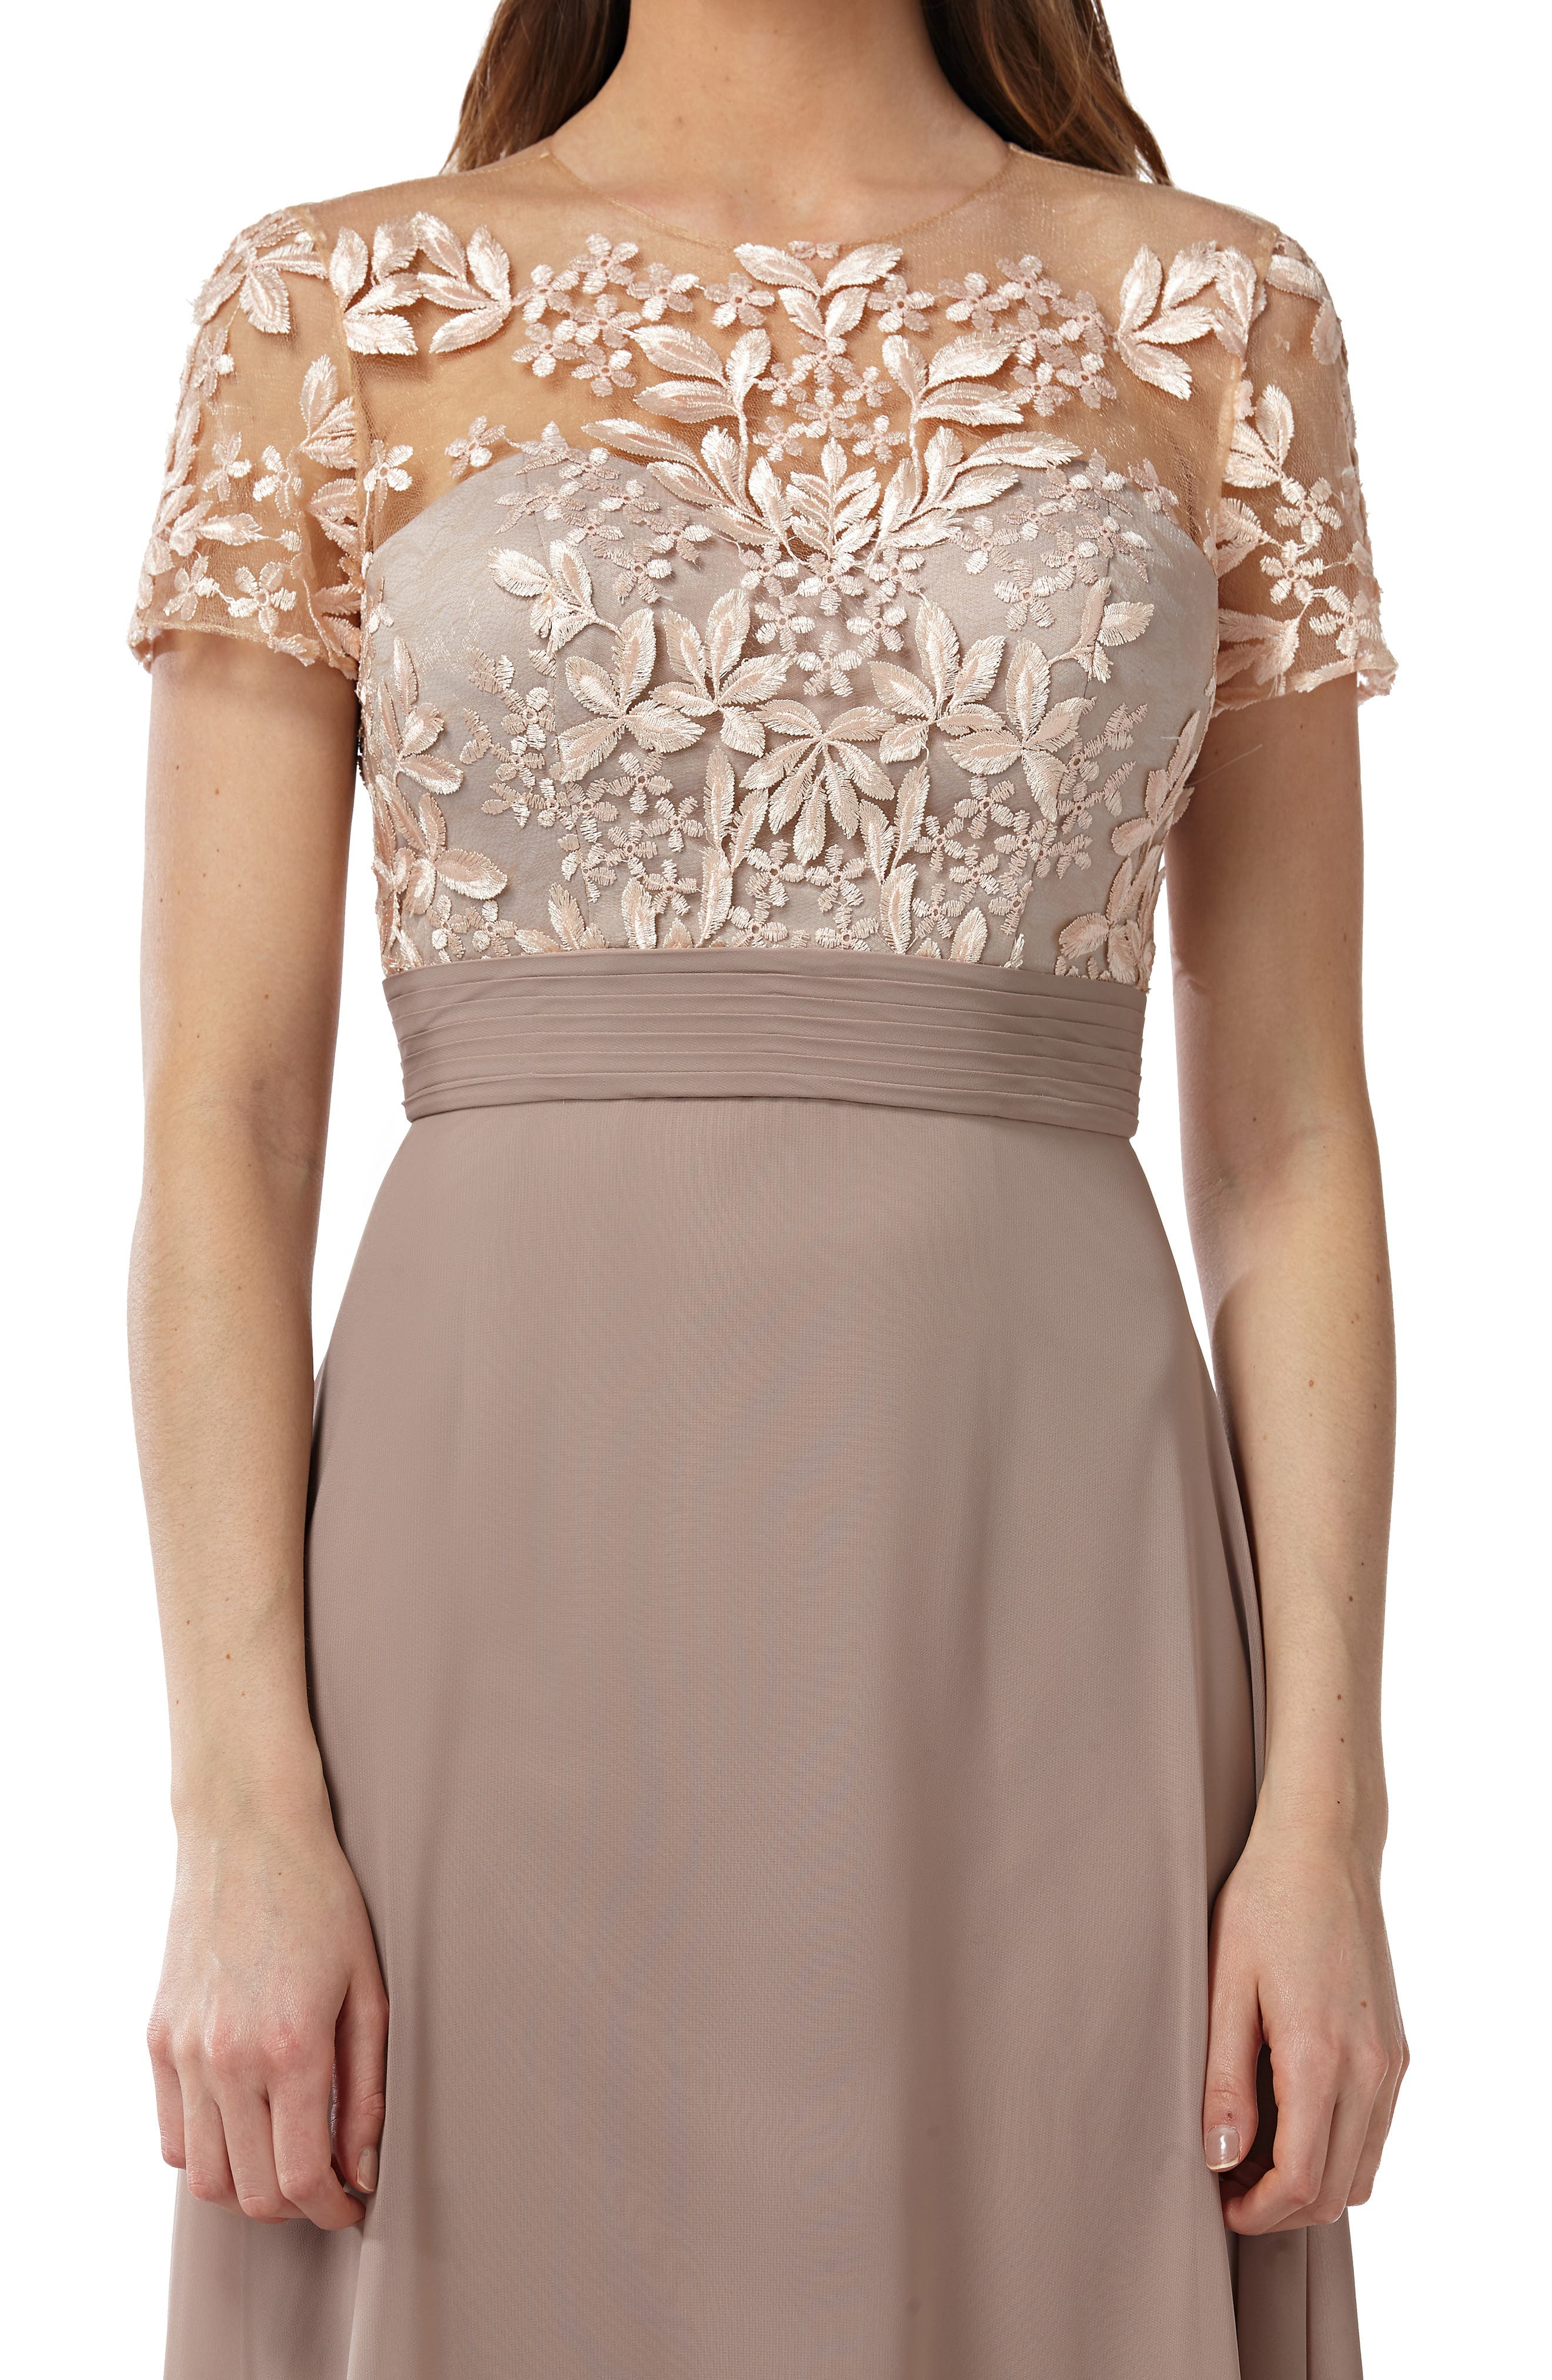 JS COLLECTIONS,                             Embroidered Illusion Bodice Gown,                             Alternate thumbnail 4, color,                             BLUSH/ NUDE